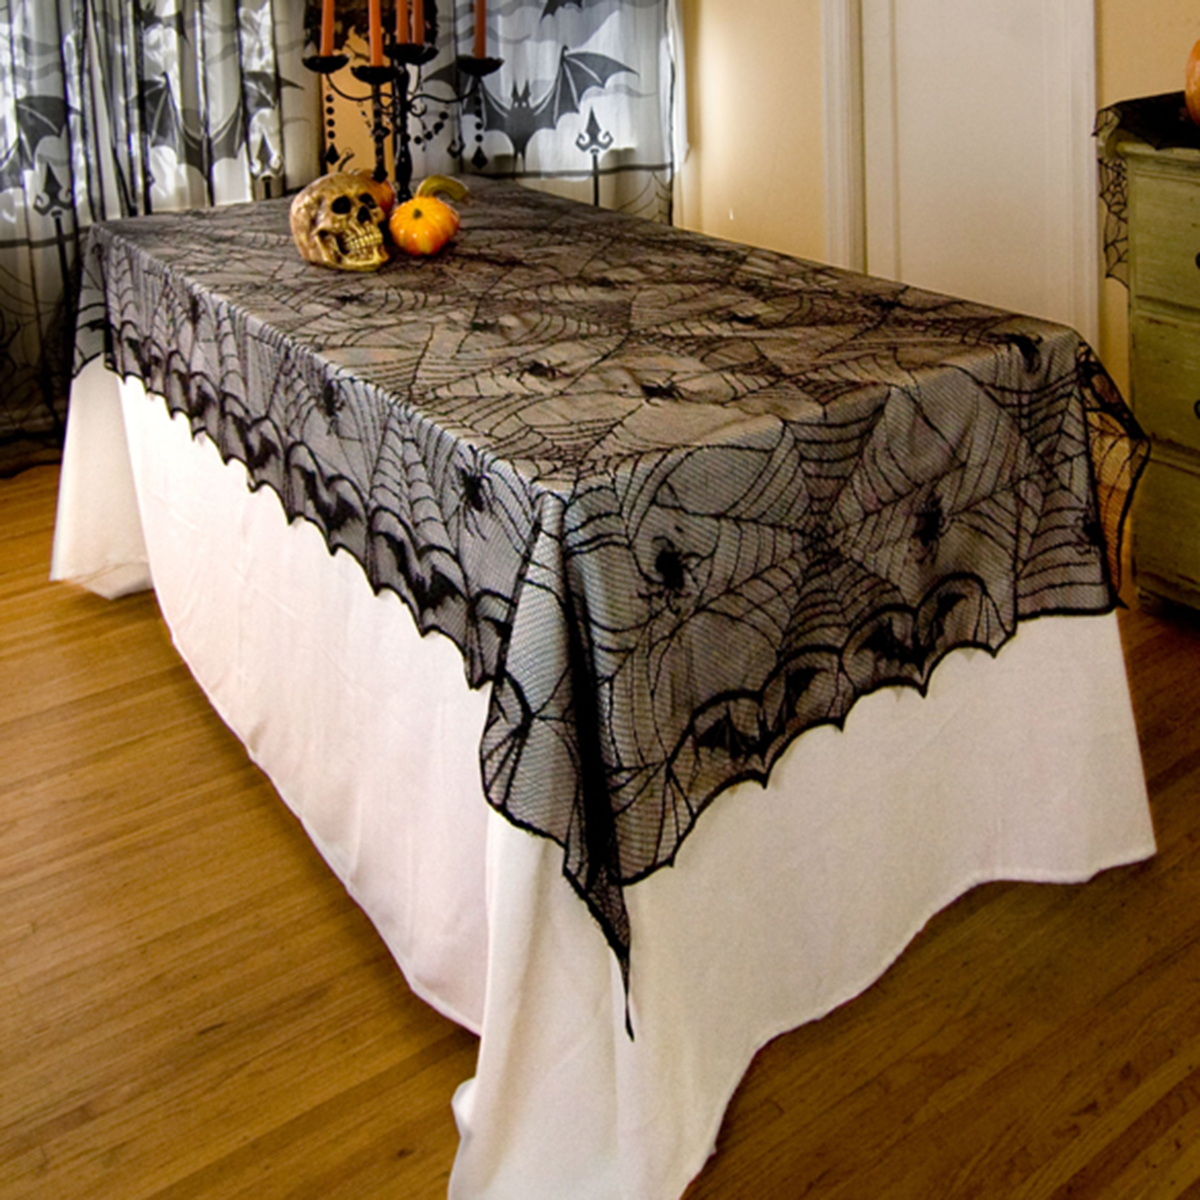 1 Piece Decoration Party Table Cloth Black Lace Spiderweb Fireplace Mantle Scarf Cover Festive